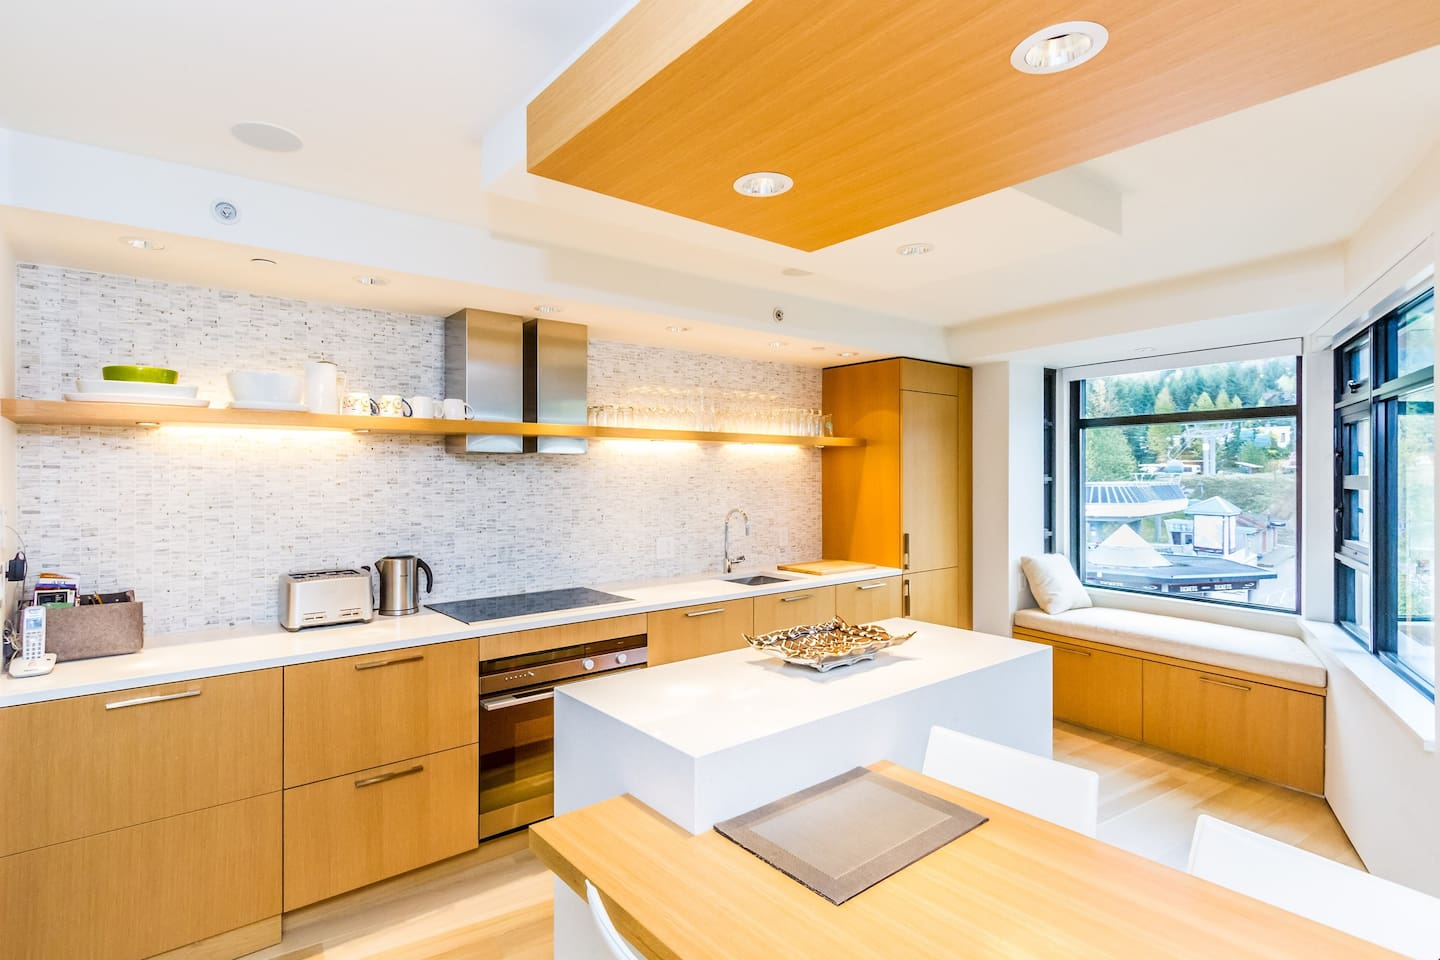 This fully stocked kitchen has everything you need to cook up a beautiful gourmet meal.